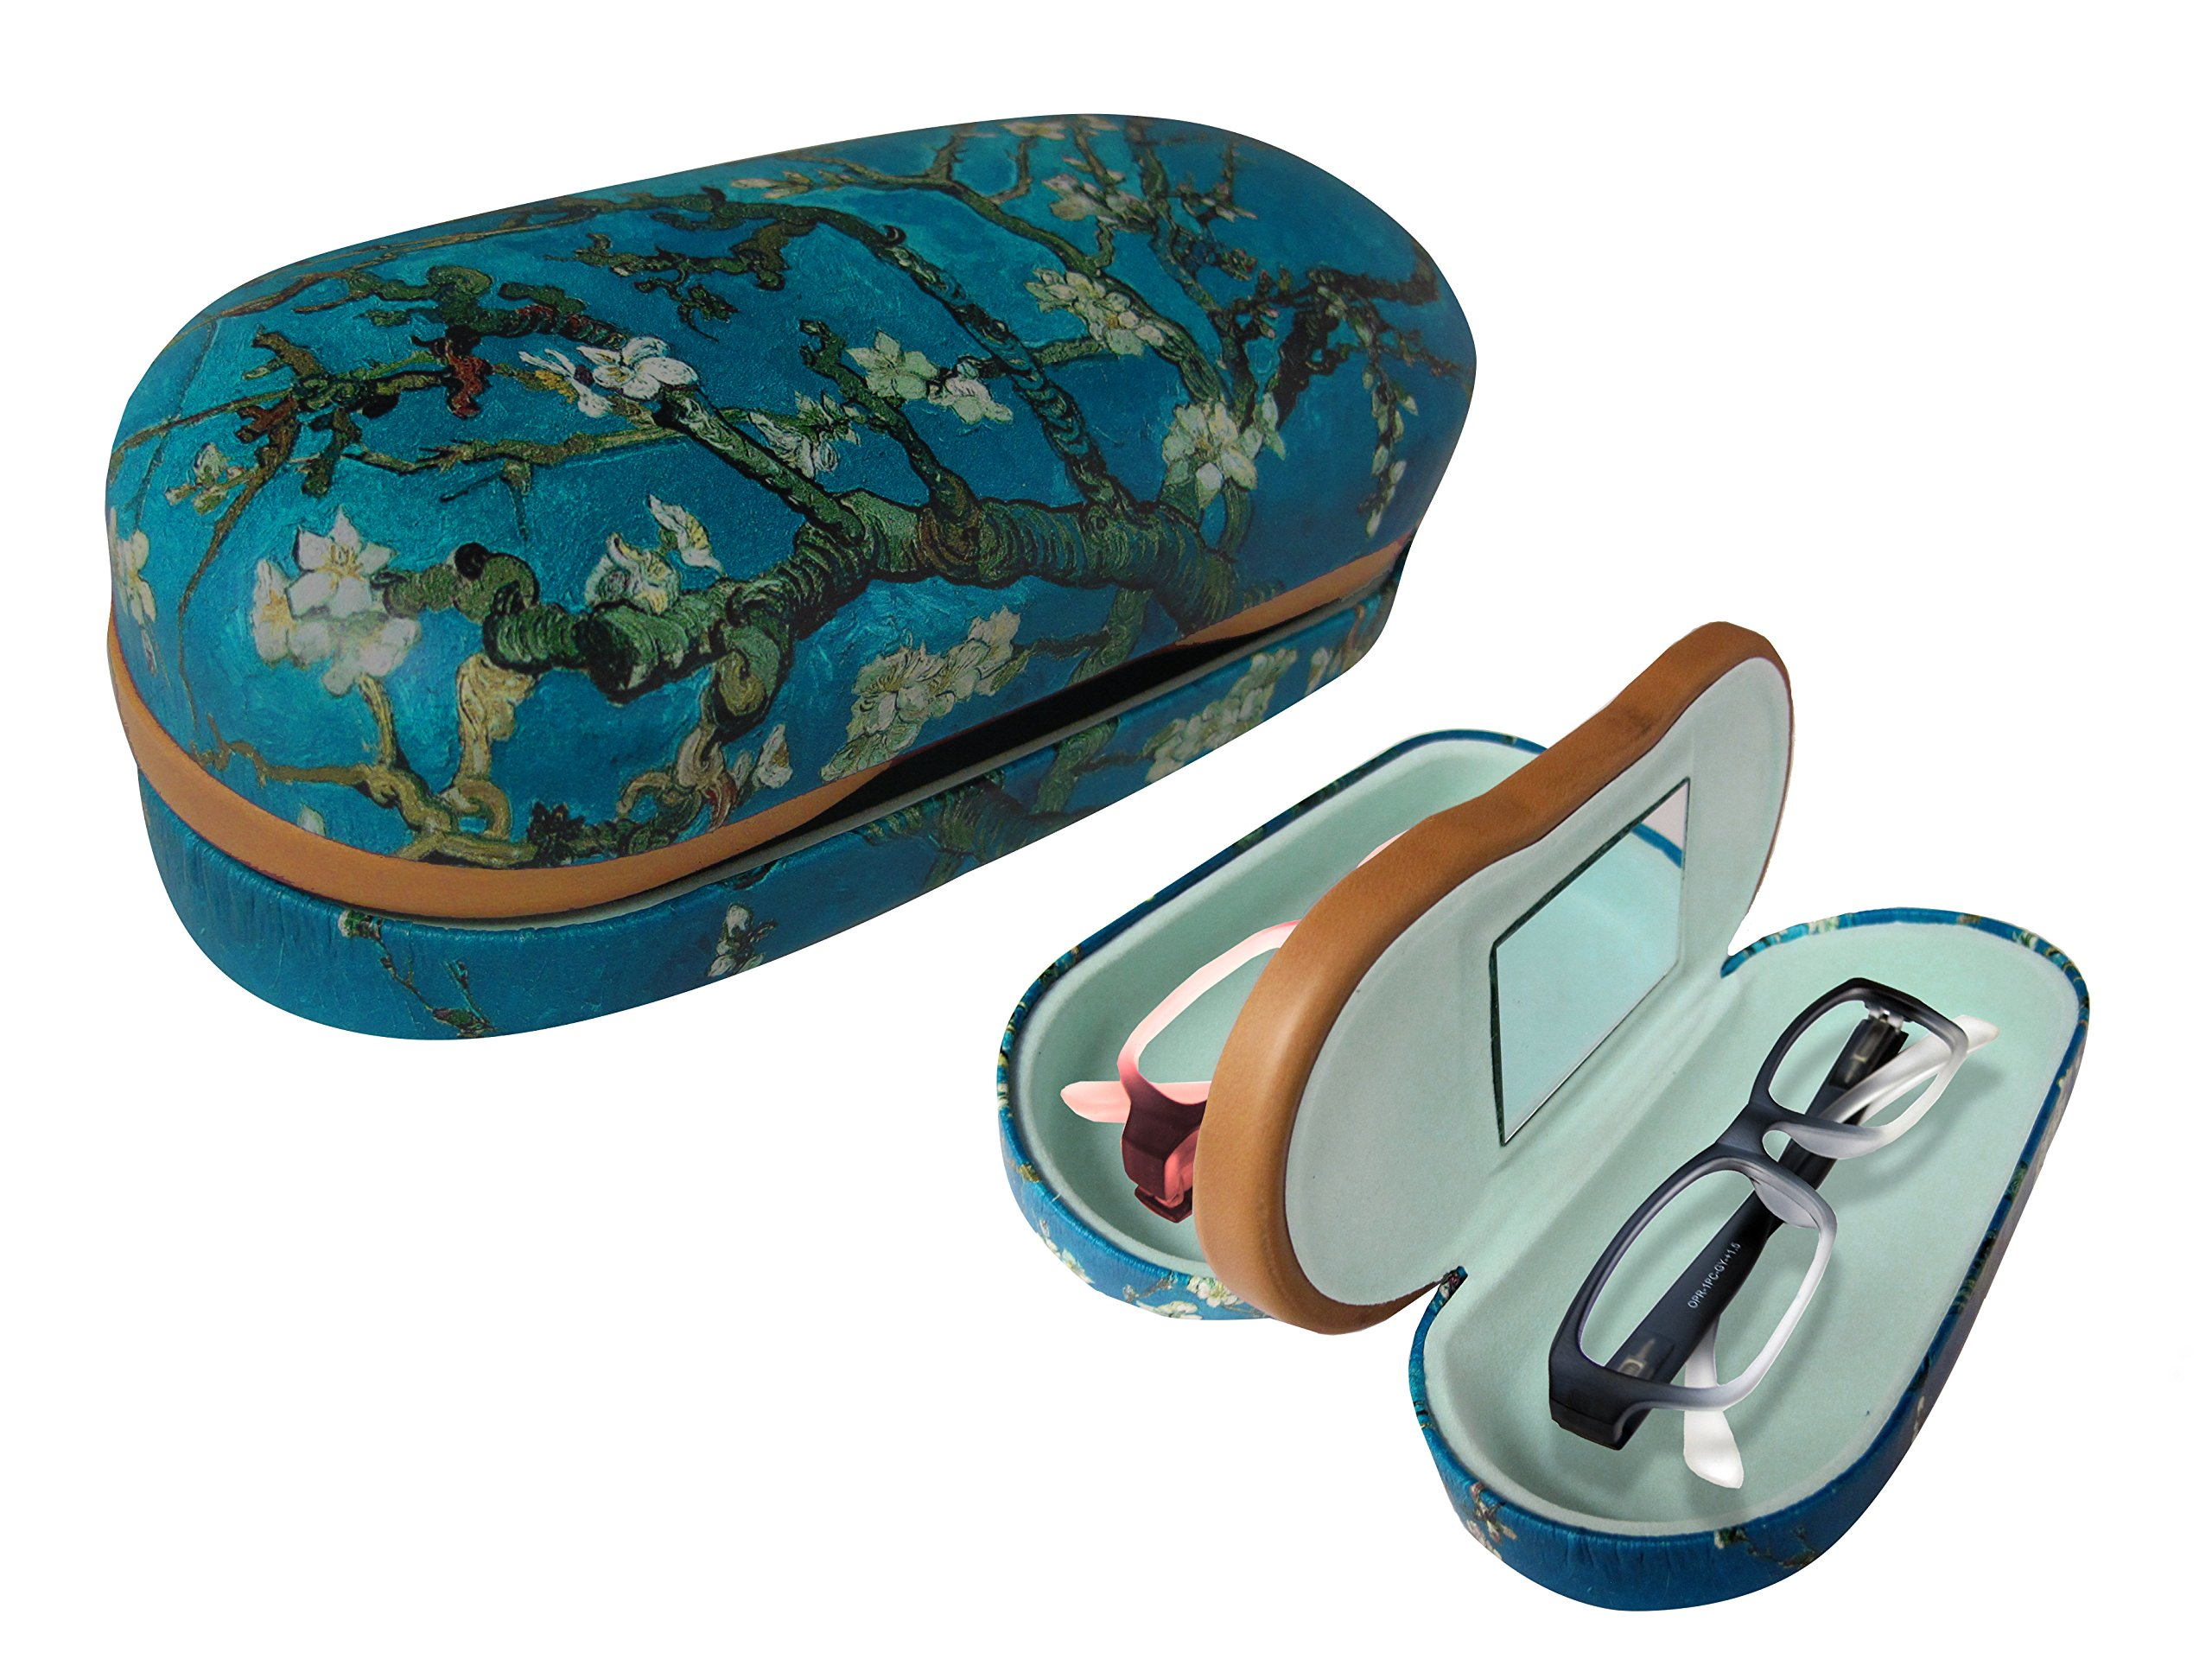 Dual Glasses Case for Two Frames - Double Layer Clamshell Hard Protective Case with Soft Felt Interior with Built-In Mirror – Blue with Tree Print and Matte Finish - By OptiPlix